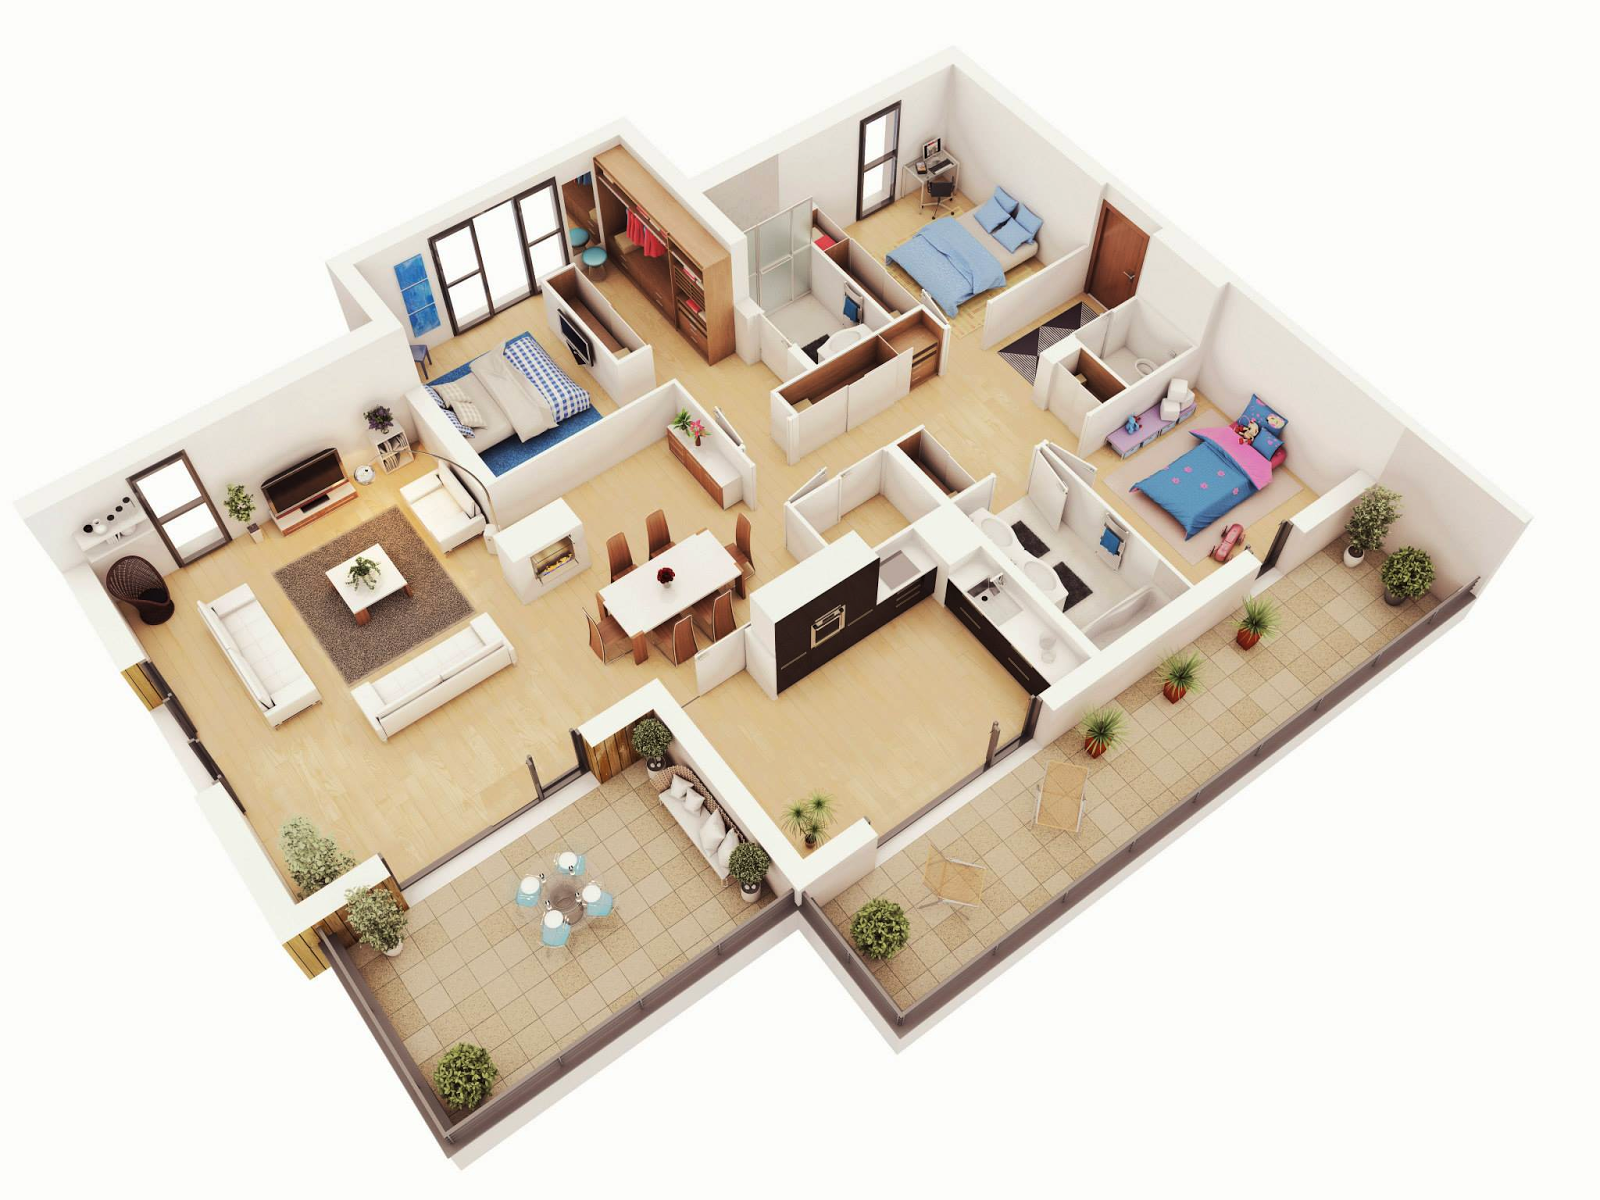 3d 3 bedroom house plans - Thoughtskoto